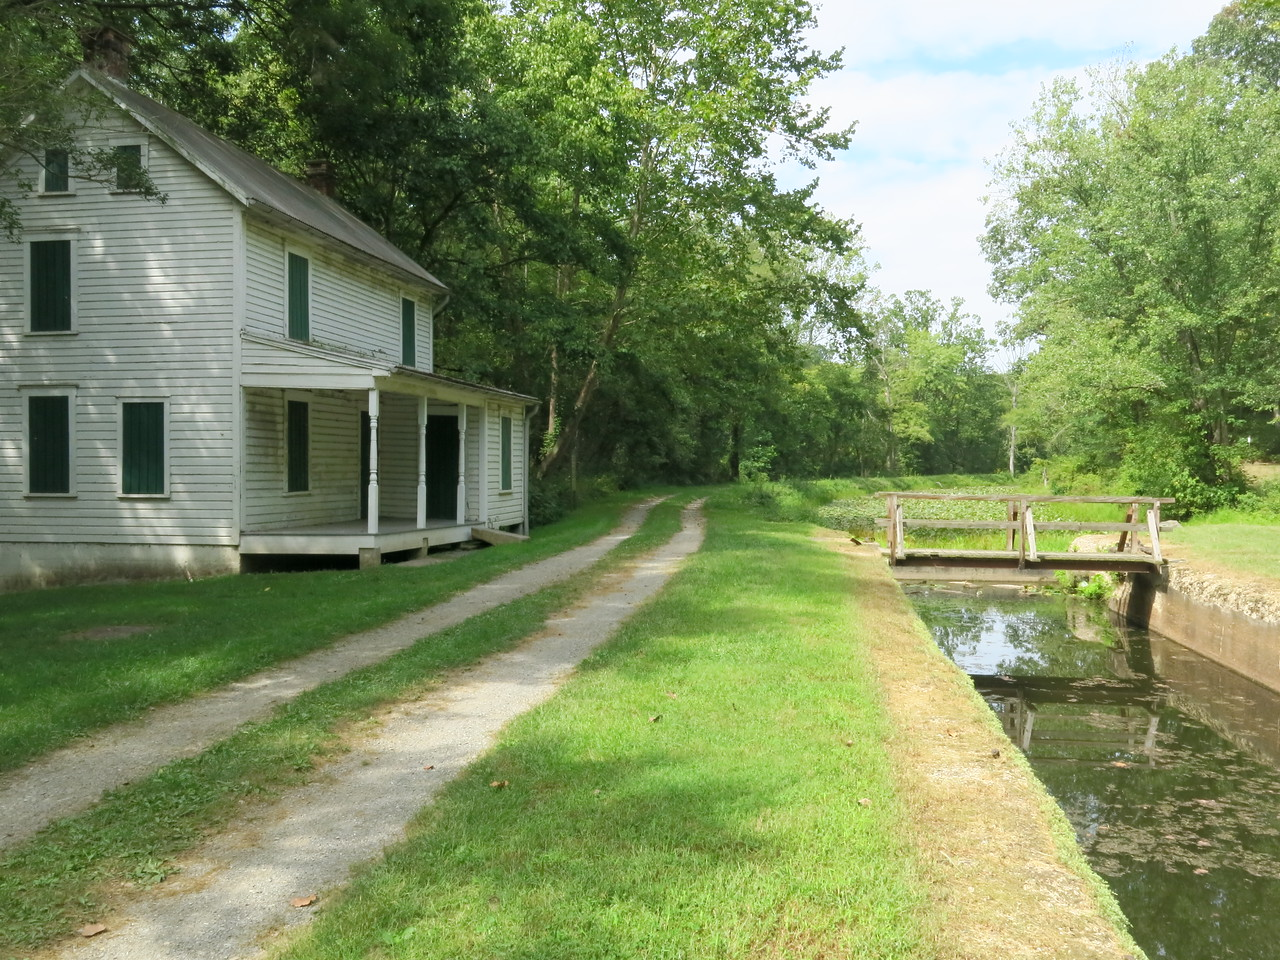 Lock 68, towpath and lockhouse at MP 164.8